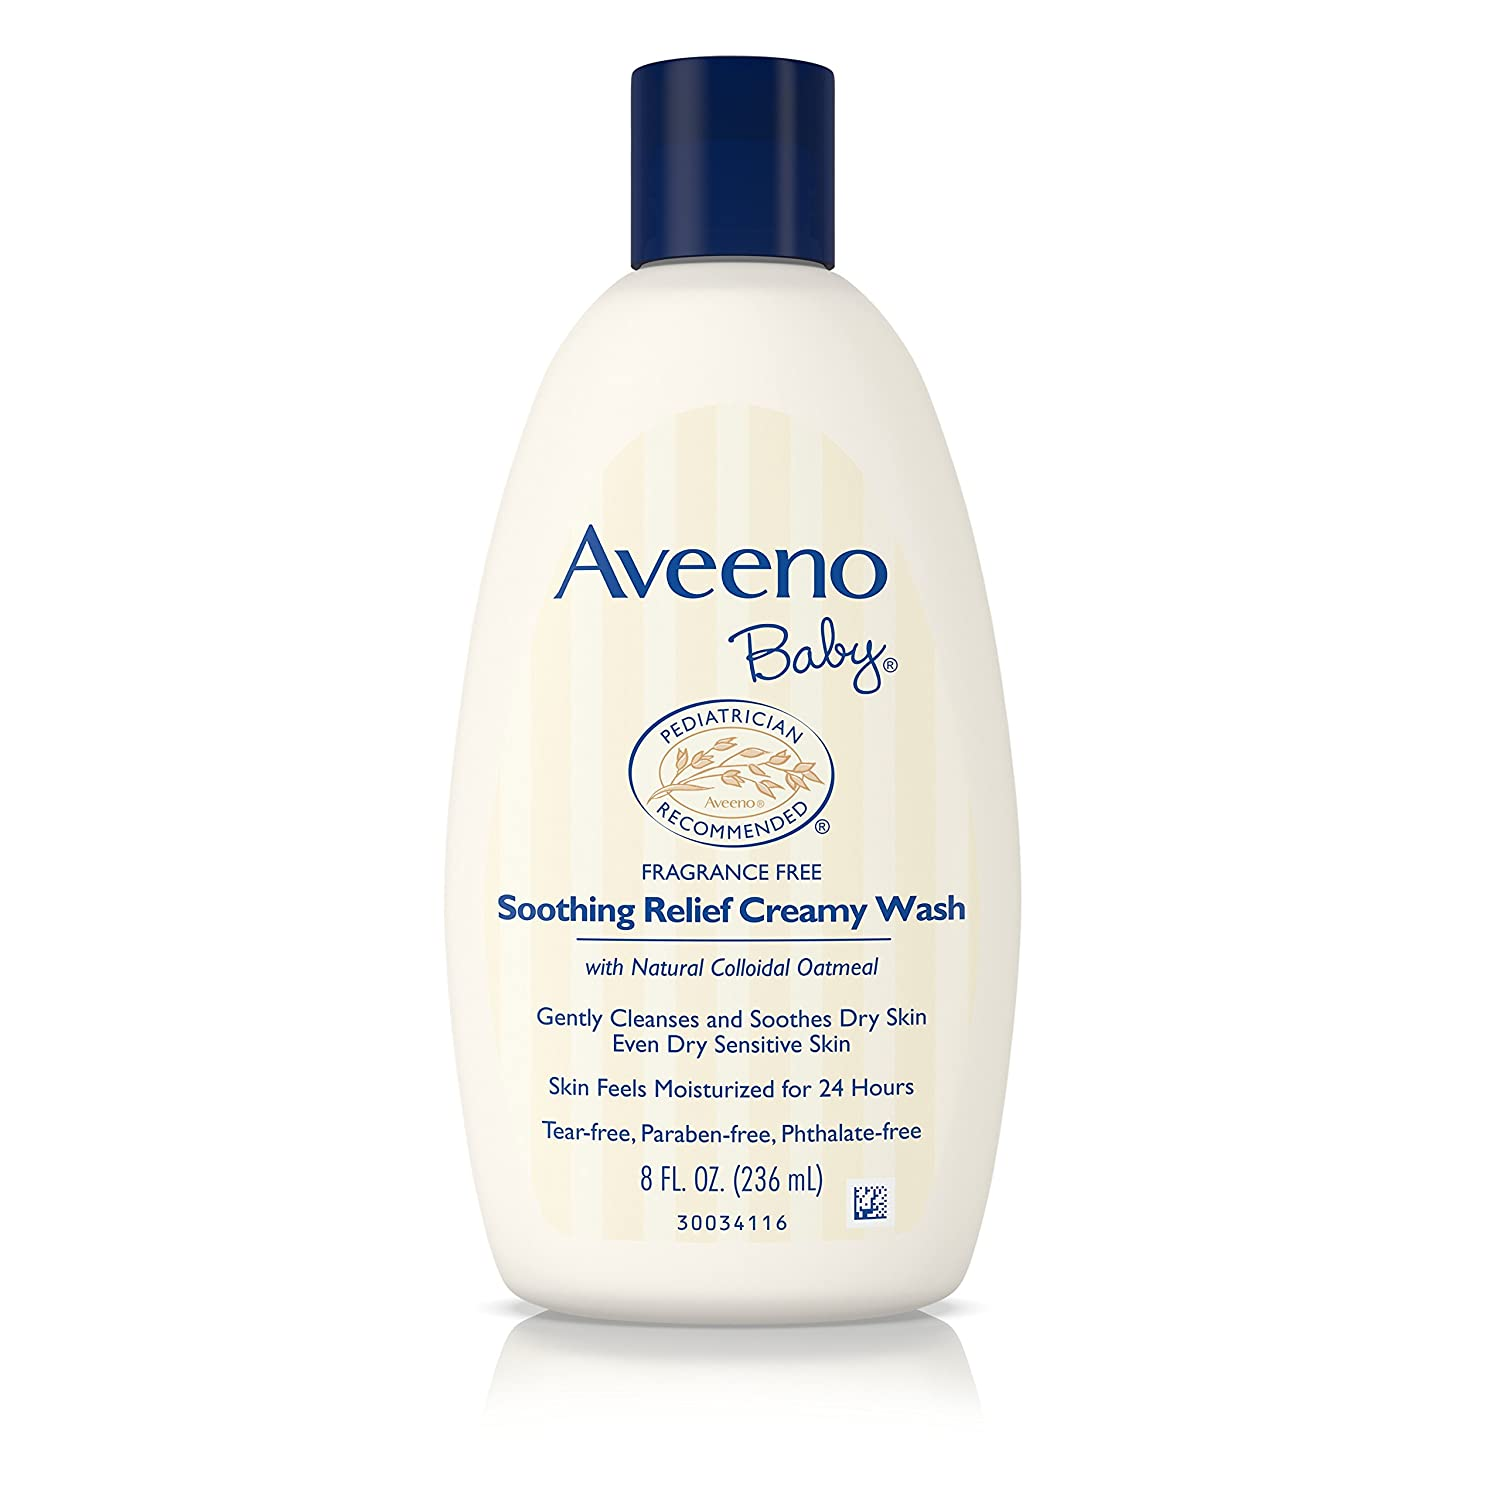 Aveeno Baby Soothing Relief Creamy Body Wash for Kids, 8 Ounce 48206033